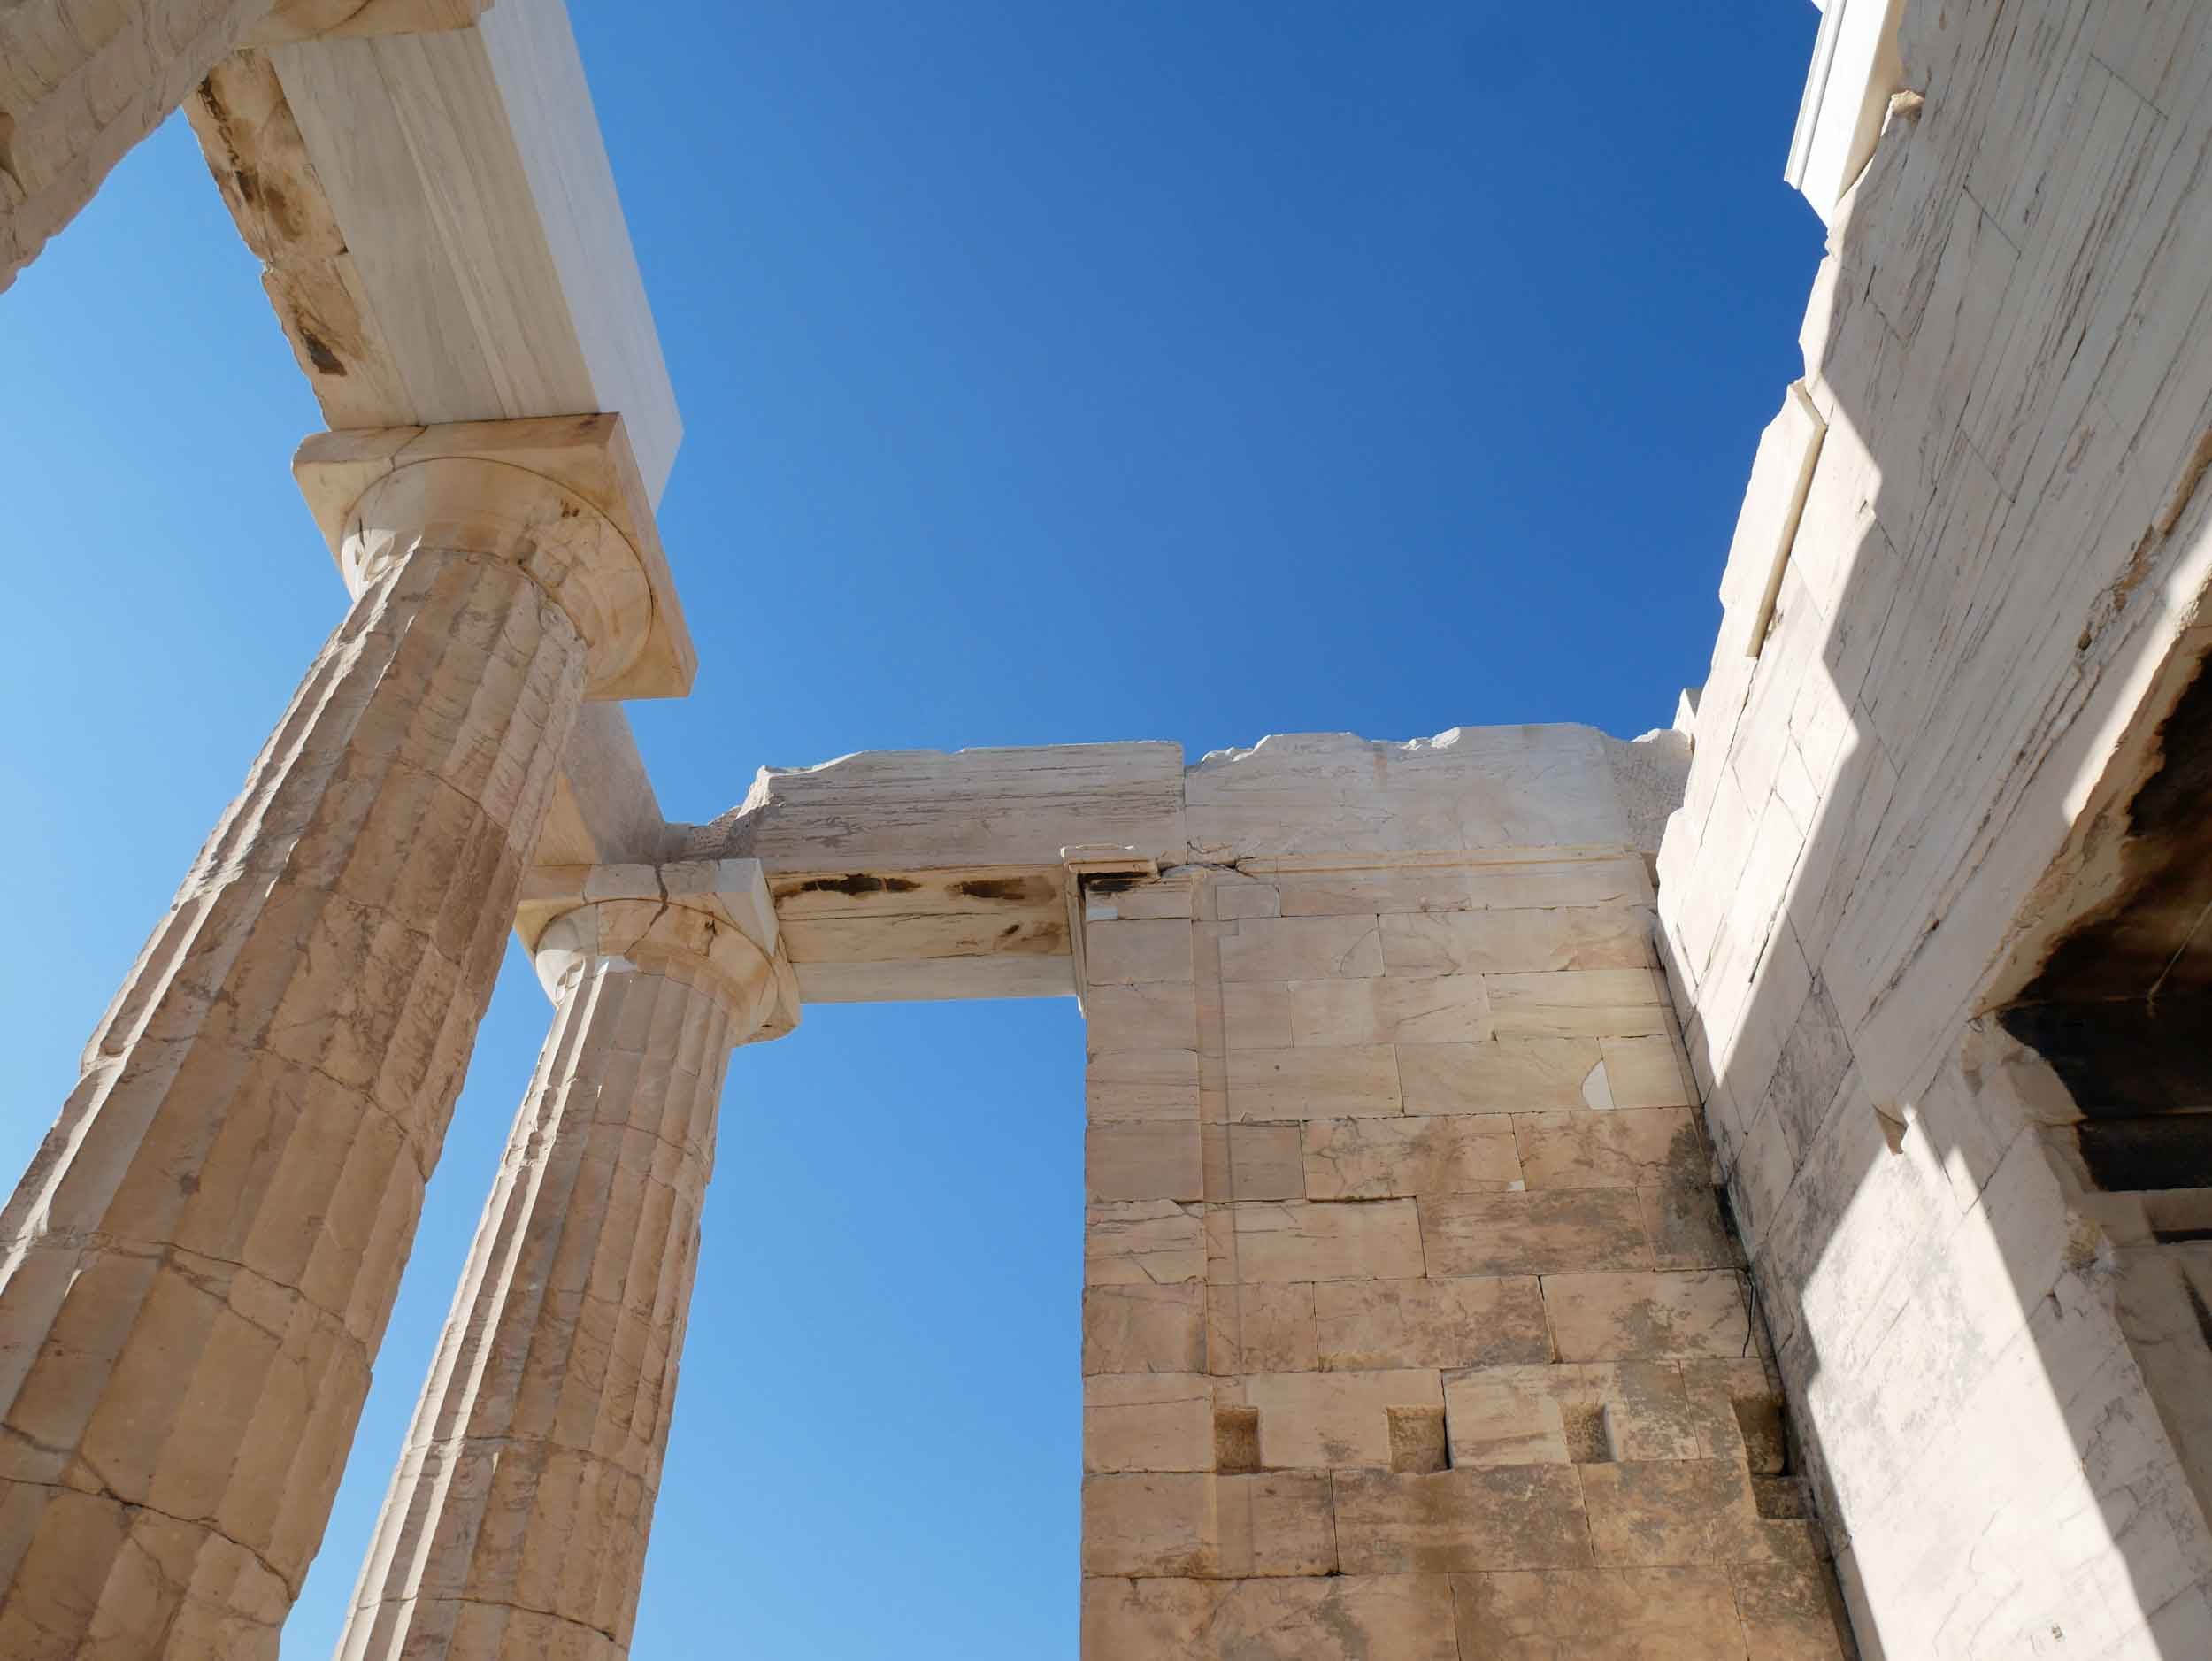 Interior view of Erechtheion, named after the demi-god Erechtheus, the mythical Athenian king, was conceived as a suitable structure to house the ancient wooden cult statue of Athena.